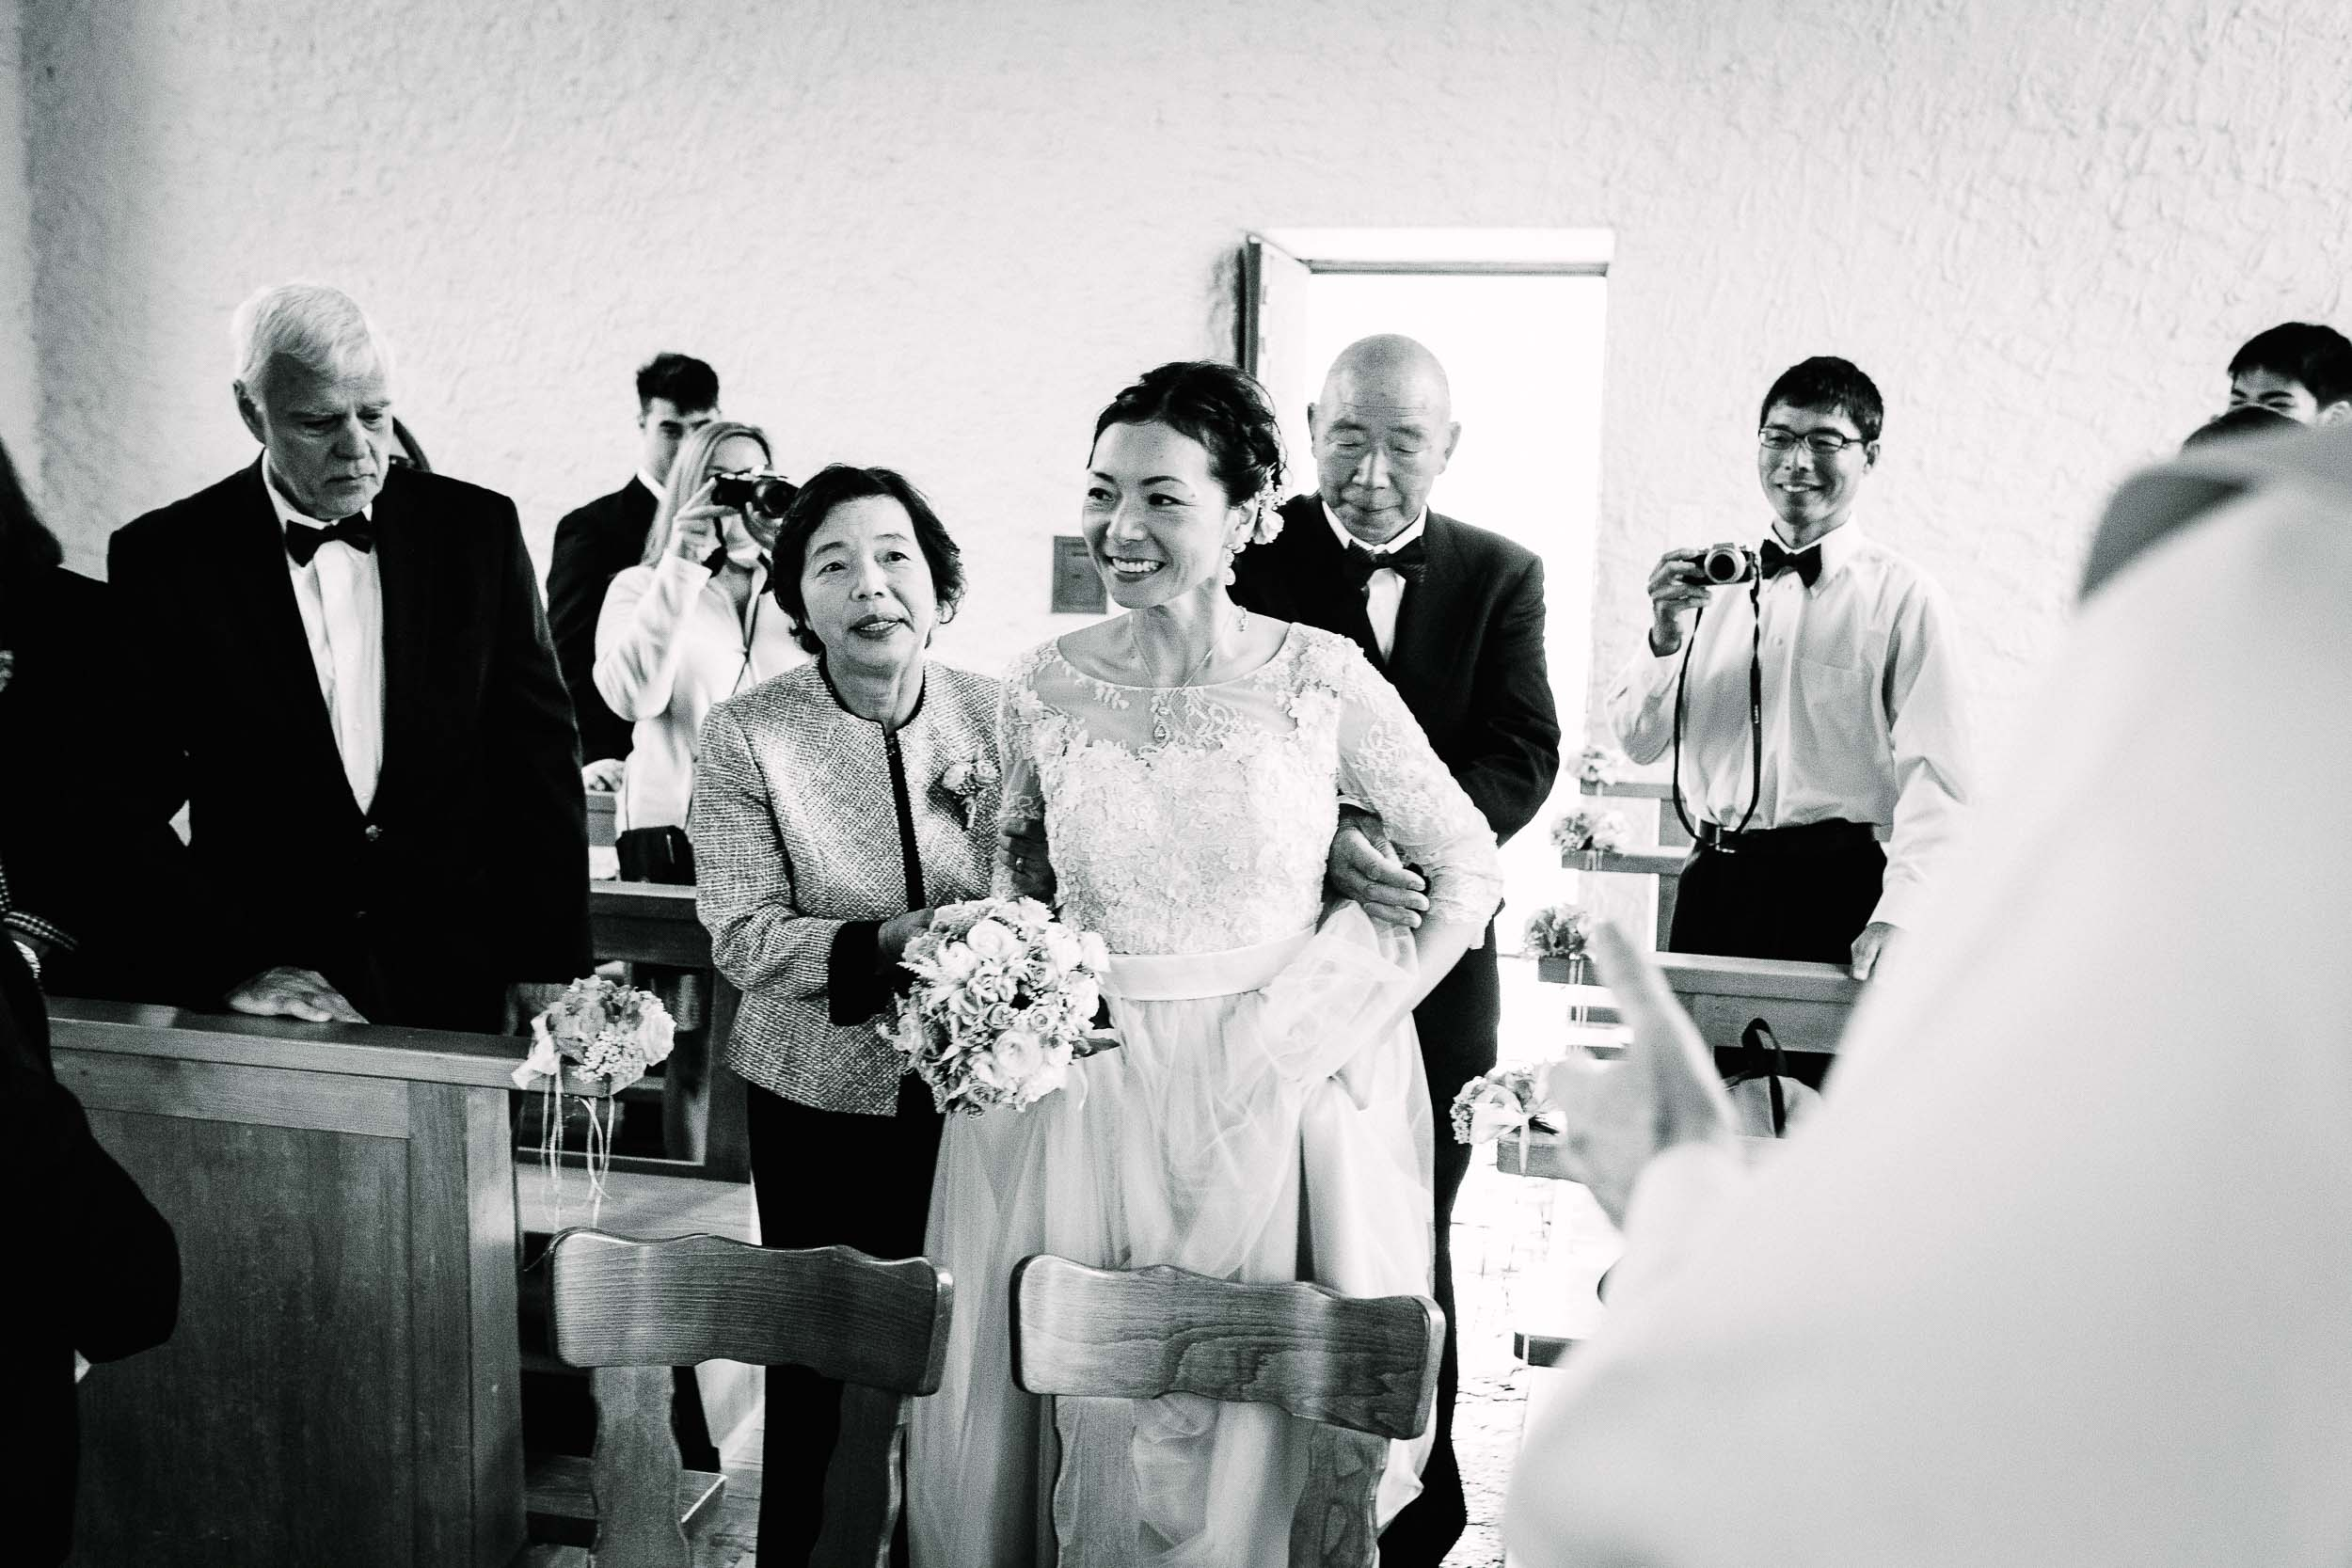 227-Kiriko-Brian-Wedding-2824-bw.jpg